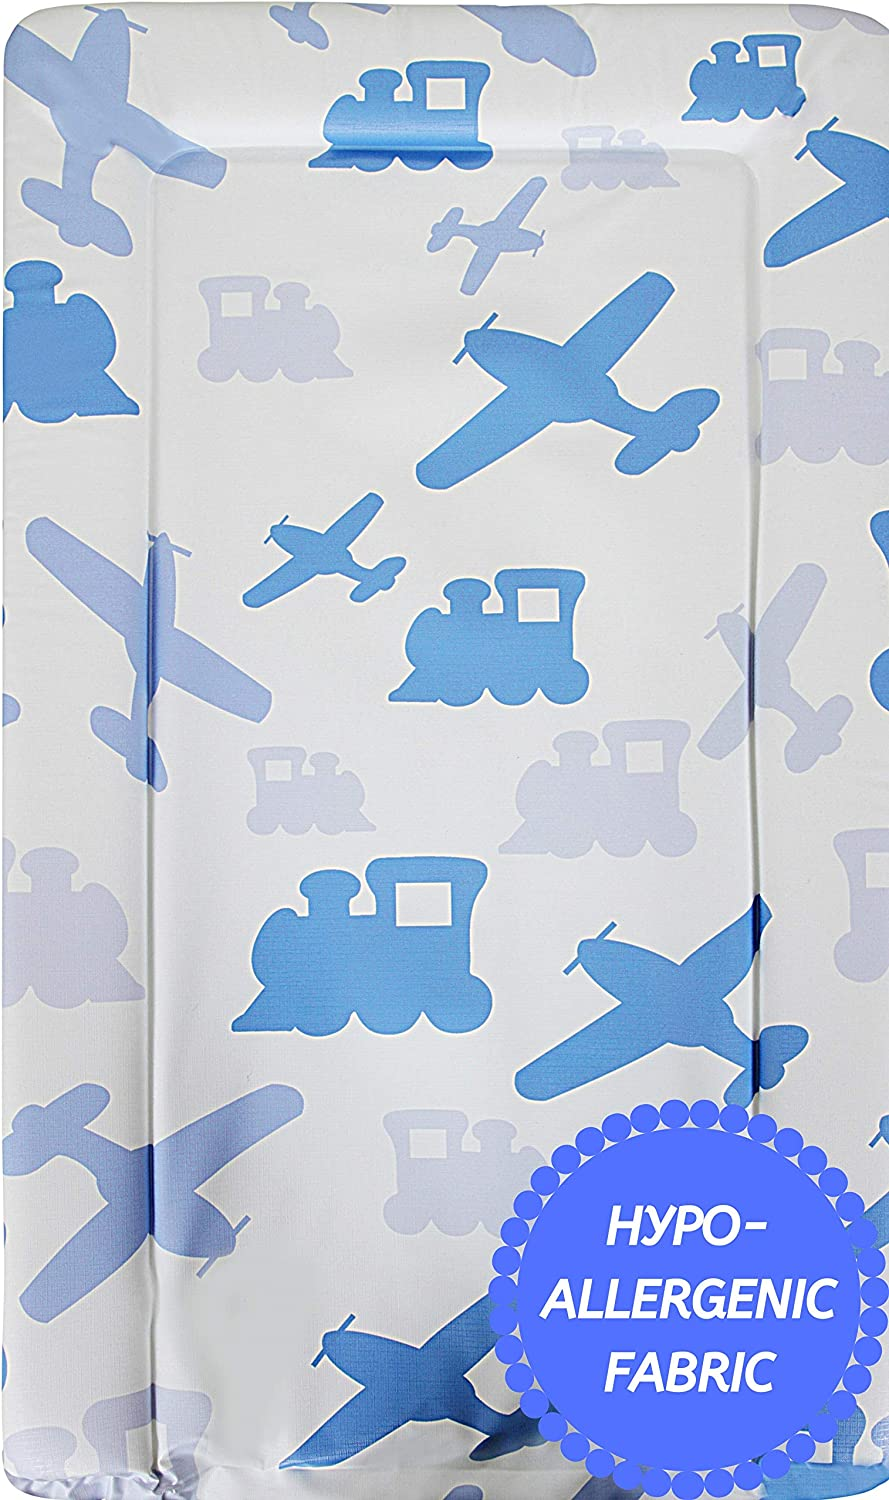 Babycurls Baby Changing Mat with Foam Raised Soft Edges for Babies from Birth Upwards Wipe Clean and Waterproof Nappy Change Pad 76 x 45cm Grey Bee